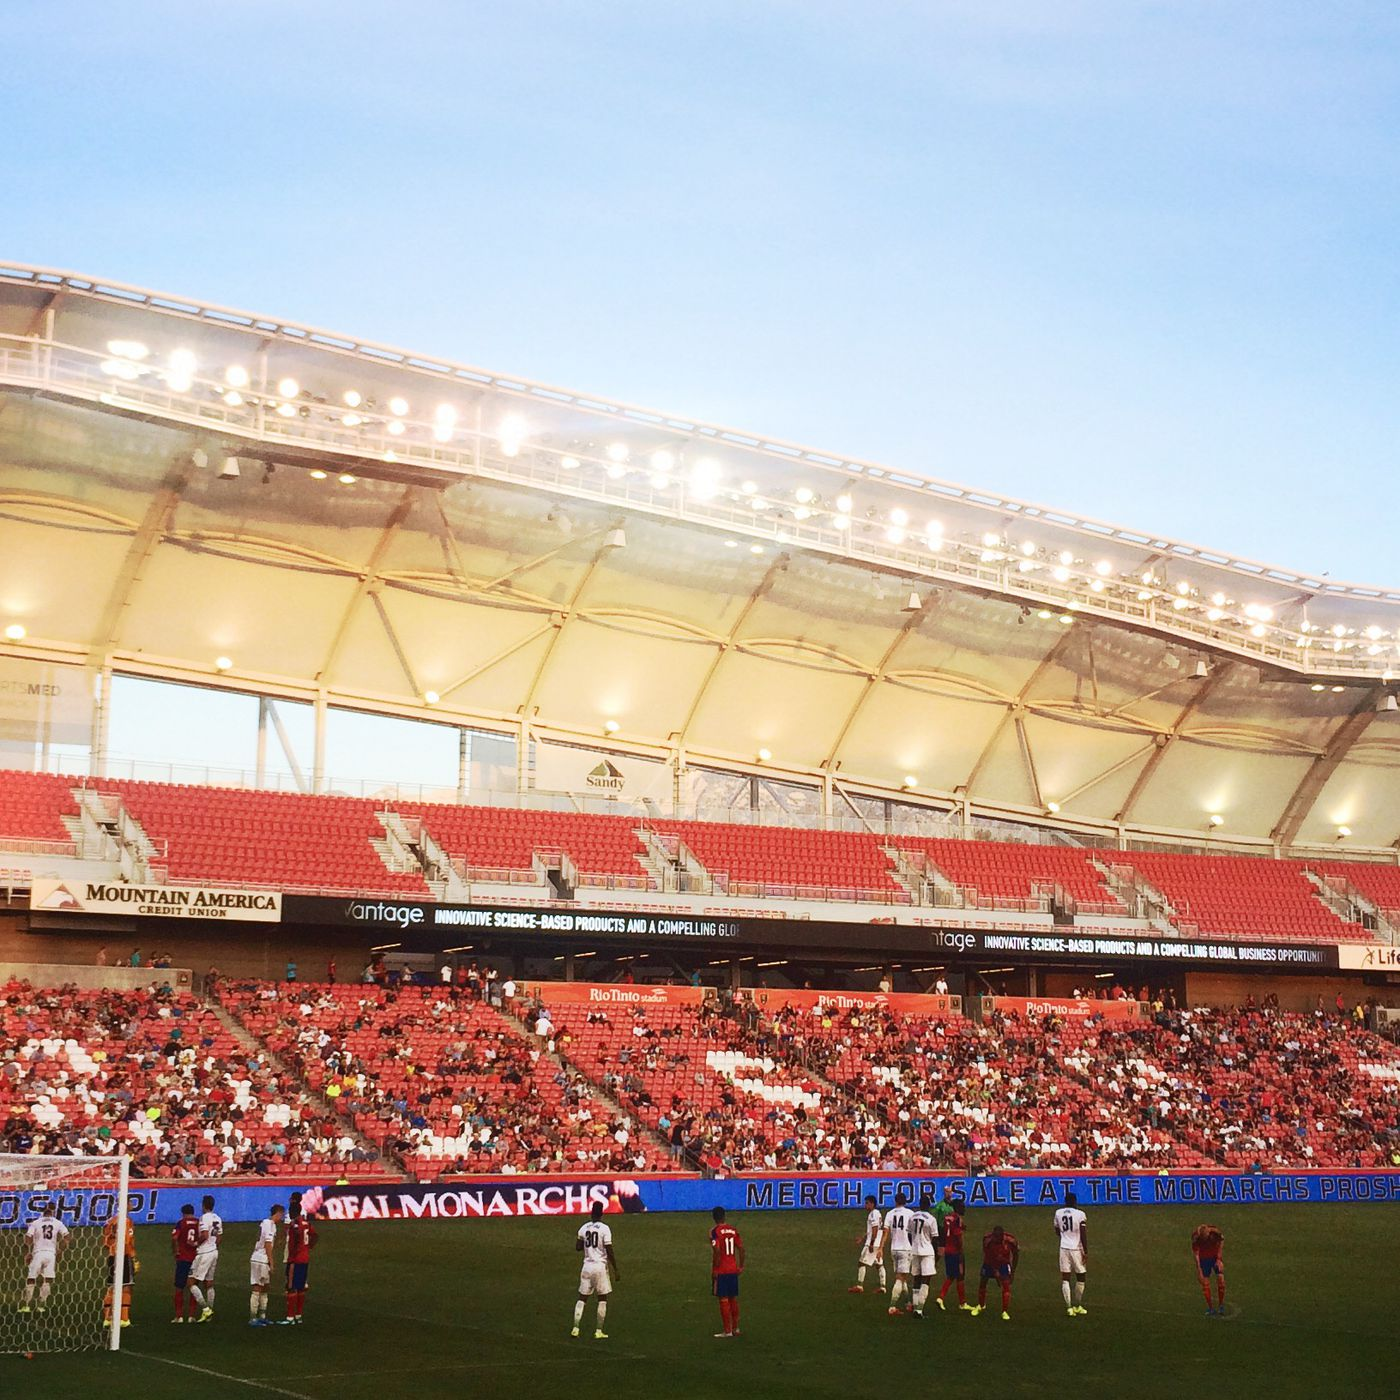 Real Monarchs win fifth in a row, down Arizona United 1-0